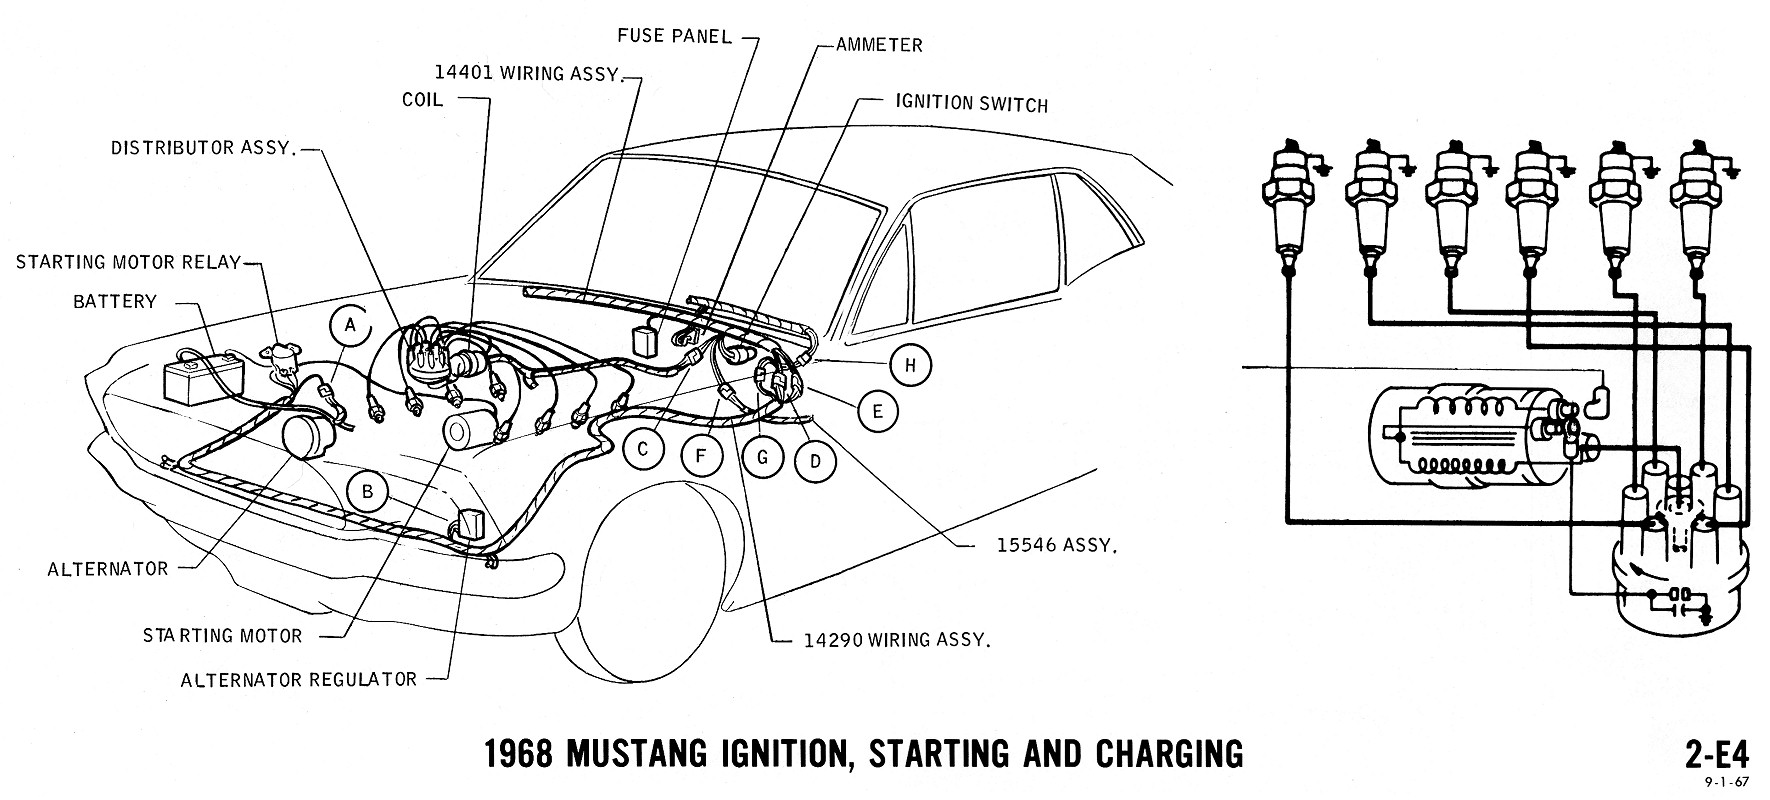 1968 mustang wiring diagram ignition starting charging 2 1968 mustang wiring diagrams and vacuum schematics average joe 68 mustang wiring harness at reclaimingppi.co